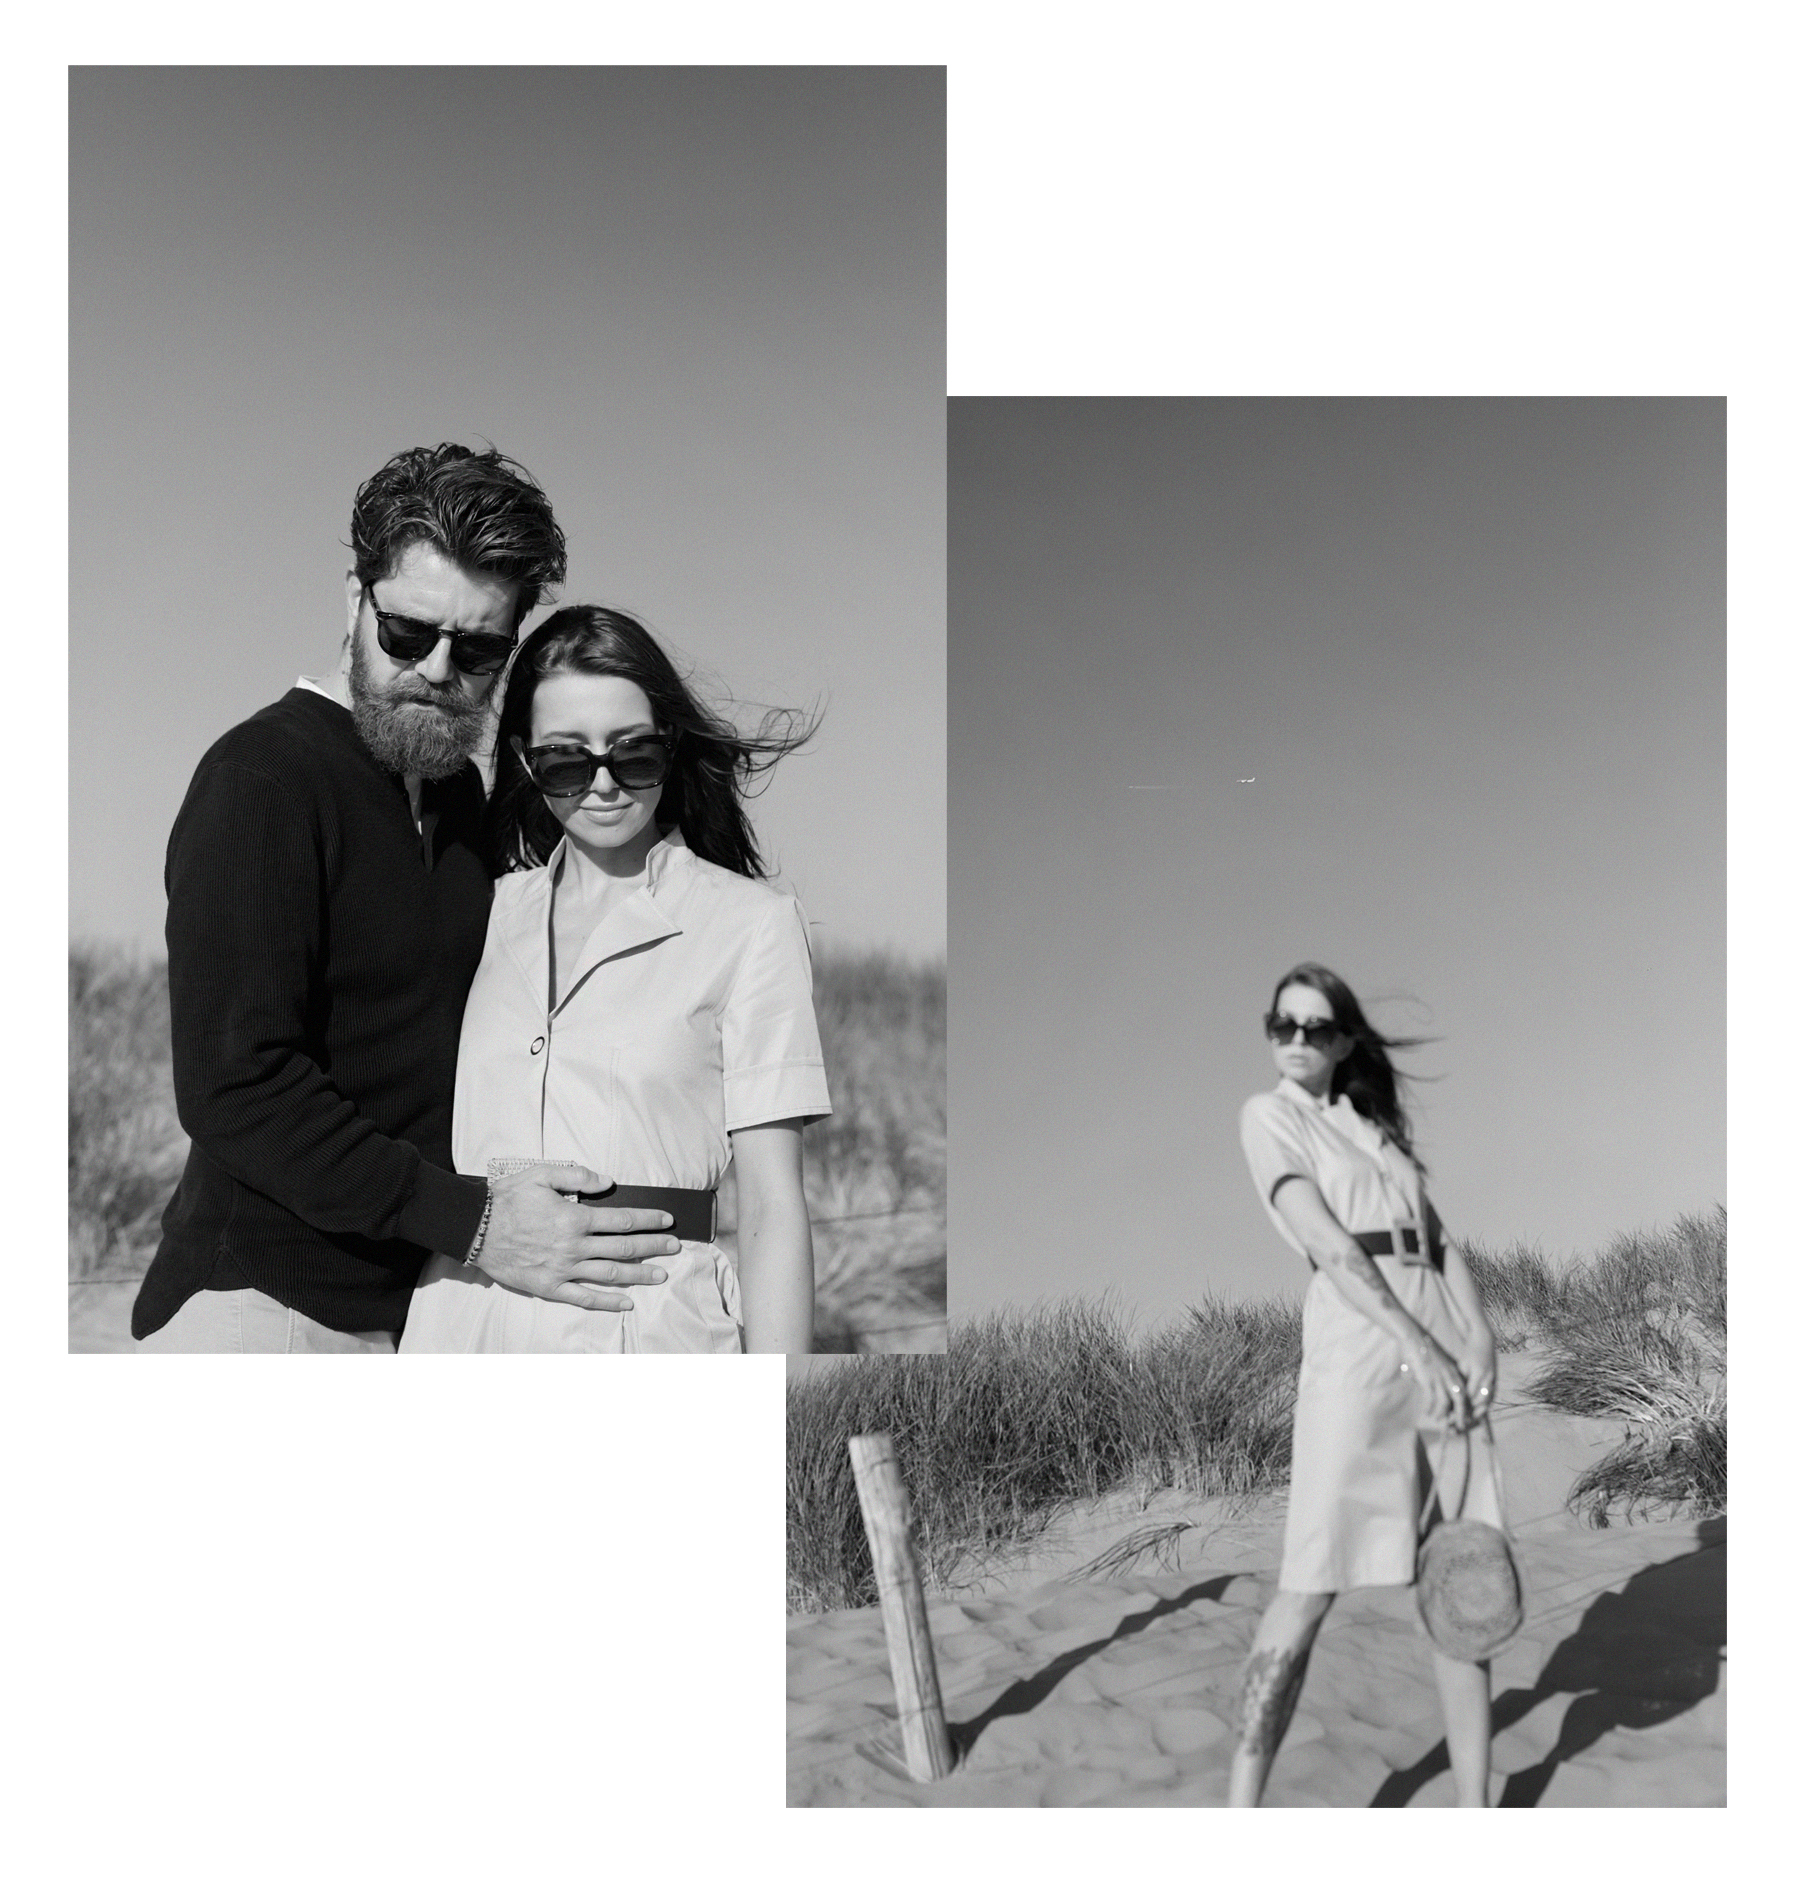 beach holland bloemendaal safari city dress outfit couple coupleblog couplegoals couplestyle romance love vintage style inspo inspiration black and white photography dusseldorf catsanddogsblog ricarda schernus modeblogger styleblog max bechmann fotograf 2